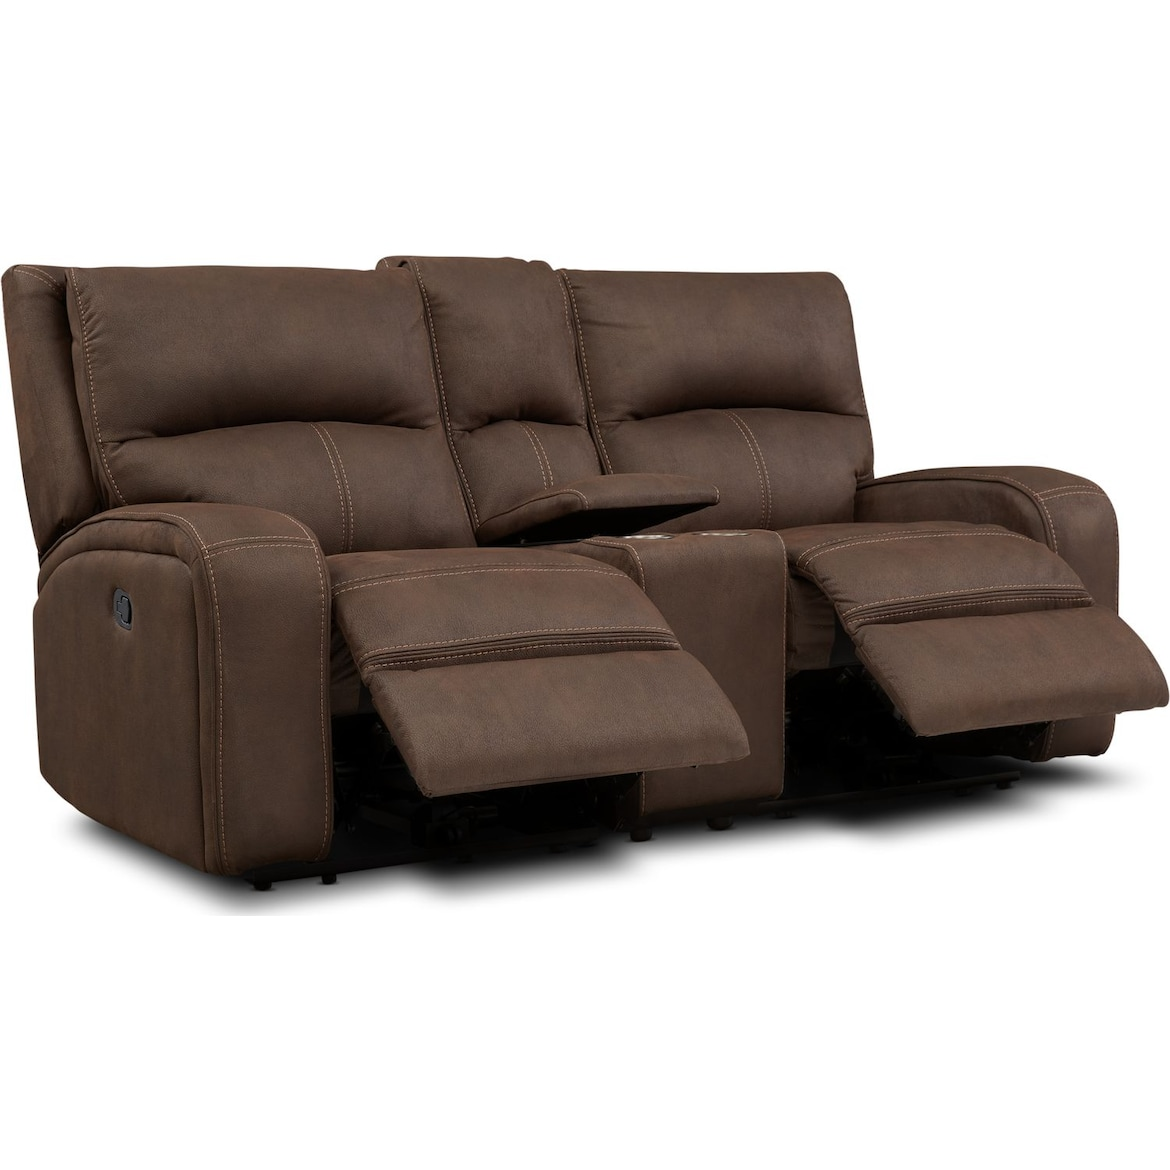 Burke Manual Reclining Sofa Loveseat With Console And